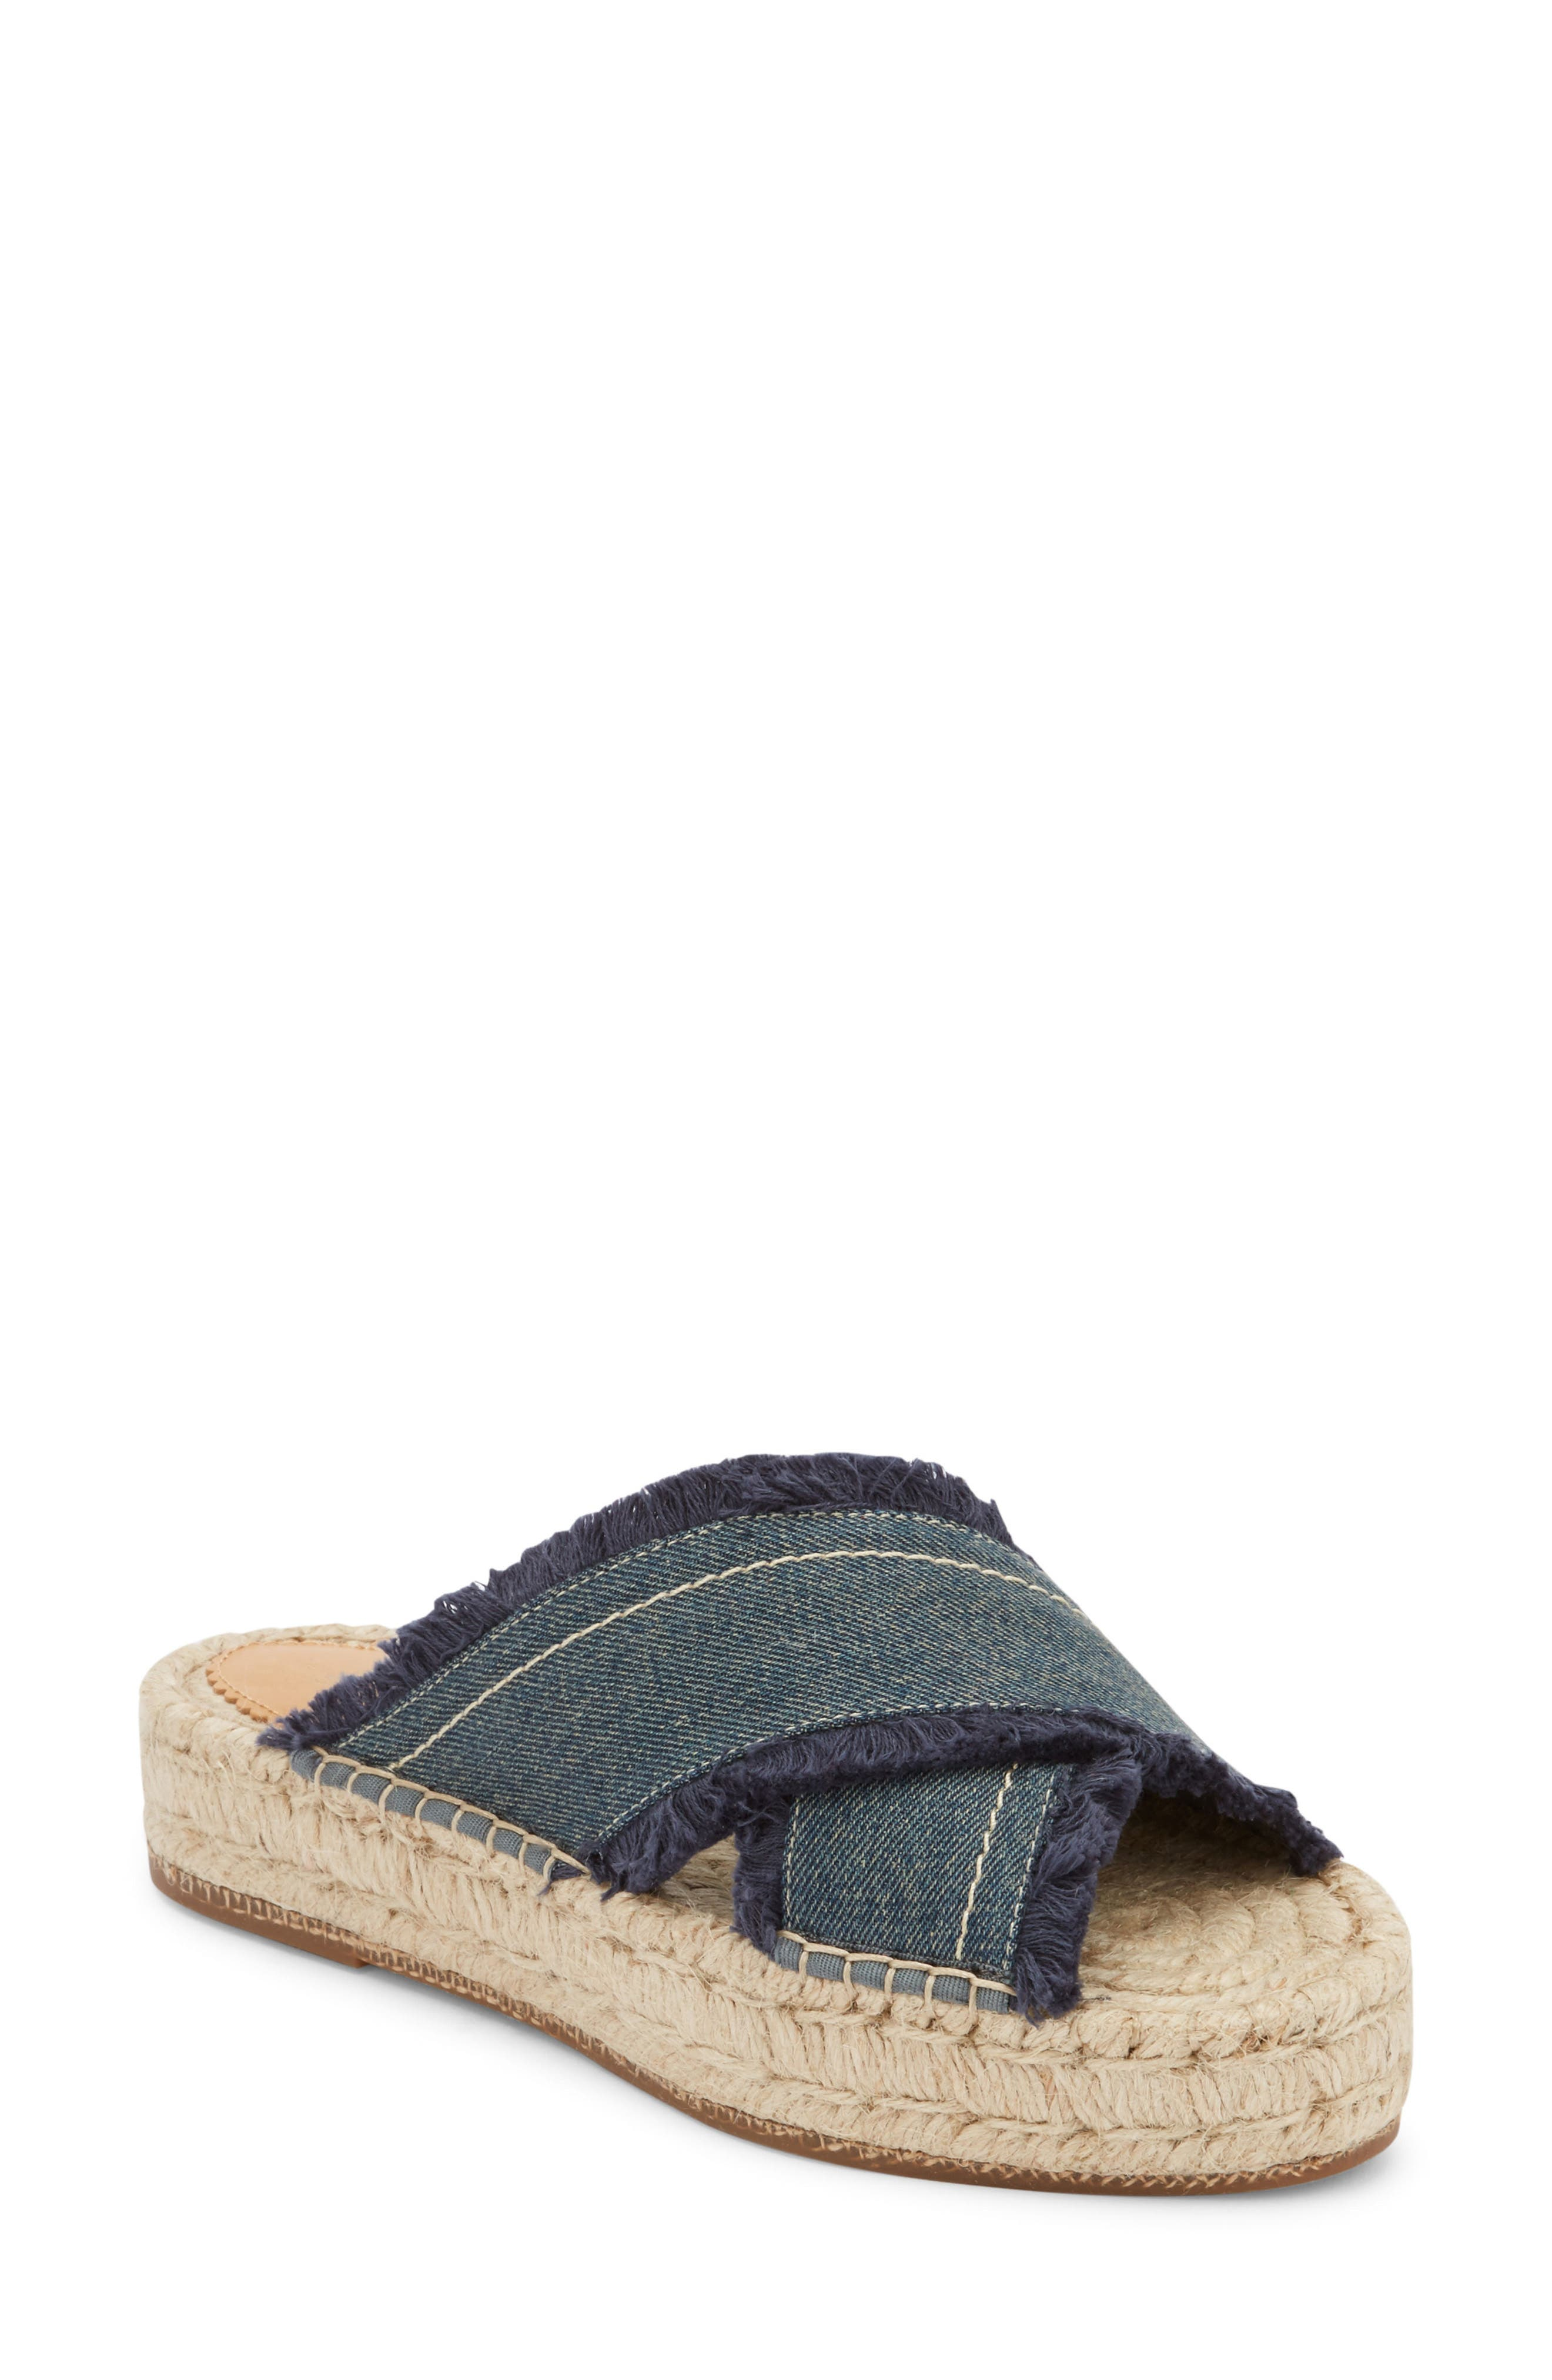 Anabelle Espadrille Sandal,                             Main thumbnail 1, color,                             DARK BLUE DENIM FABRIC